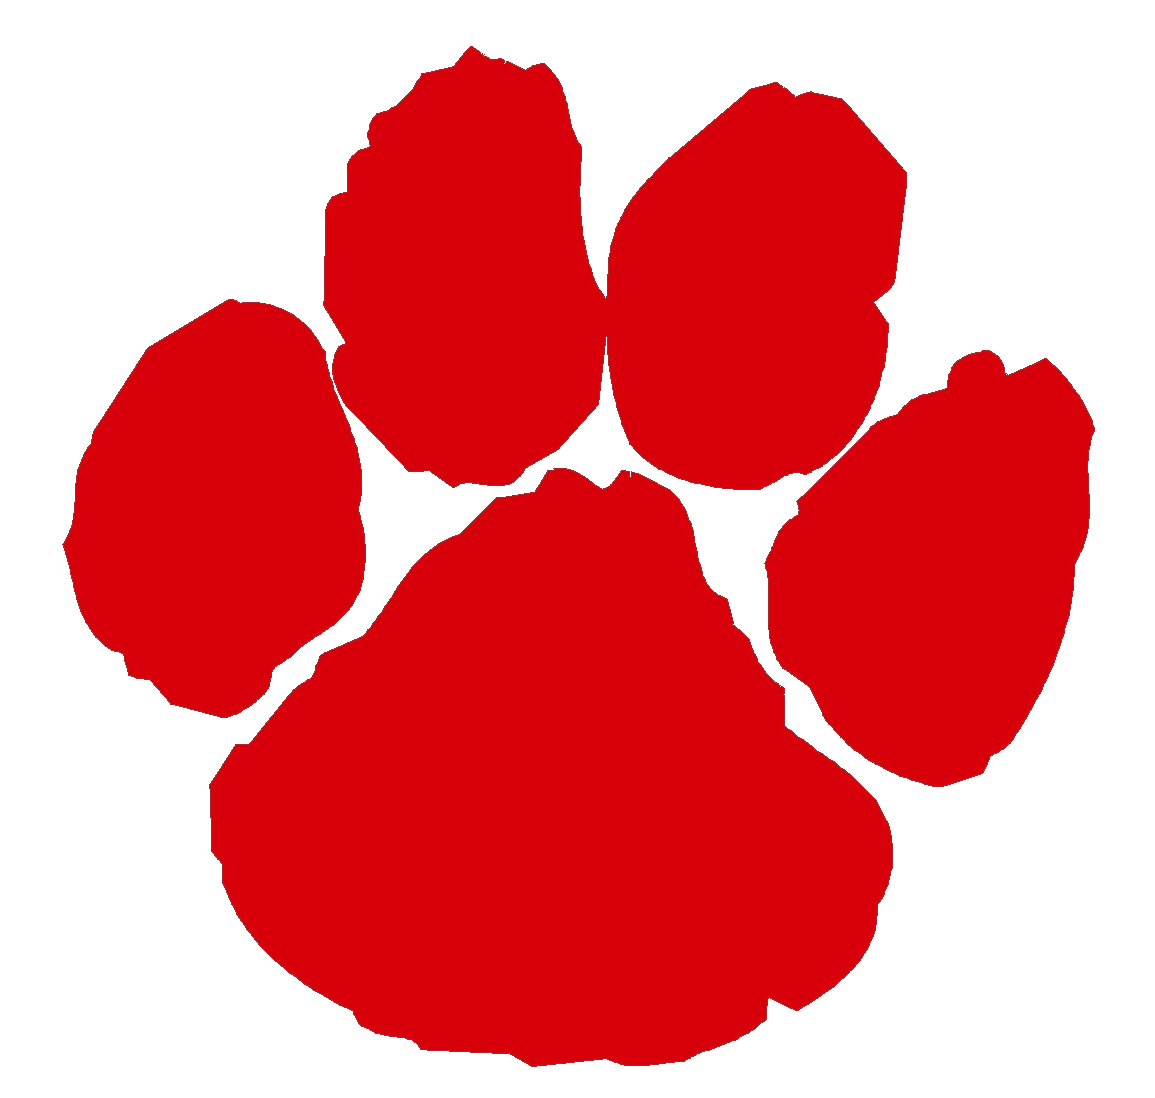 Red paw clipart clipart royalty free stock Red Paw Print Clip Art N3 free image clipart royalty free stock